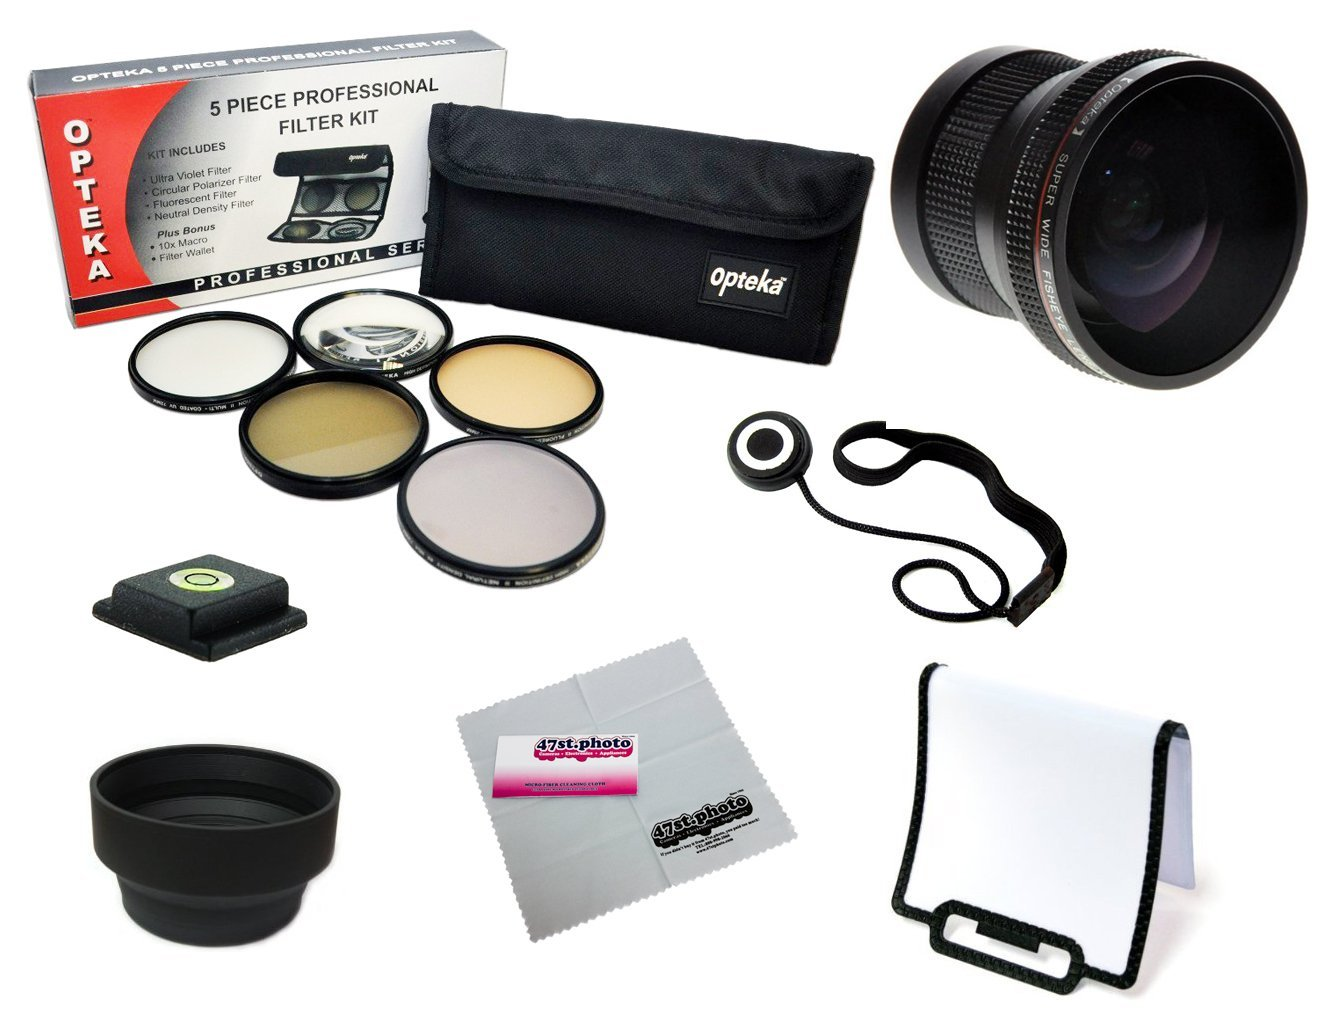 52mm Accessory Kit for NIKON D7100 D7000 D5200 D5100 D3200 D3100 D3000 D90 D80 DSLR Cameras with Opteka .20x... by Opteka